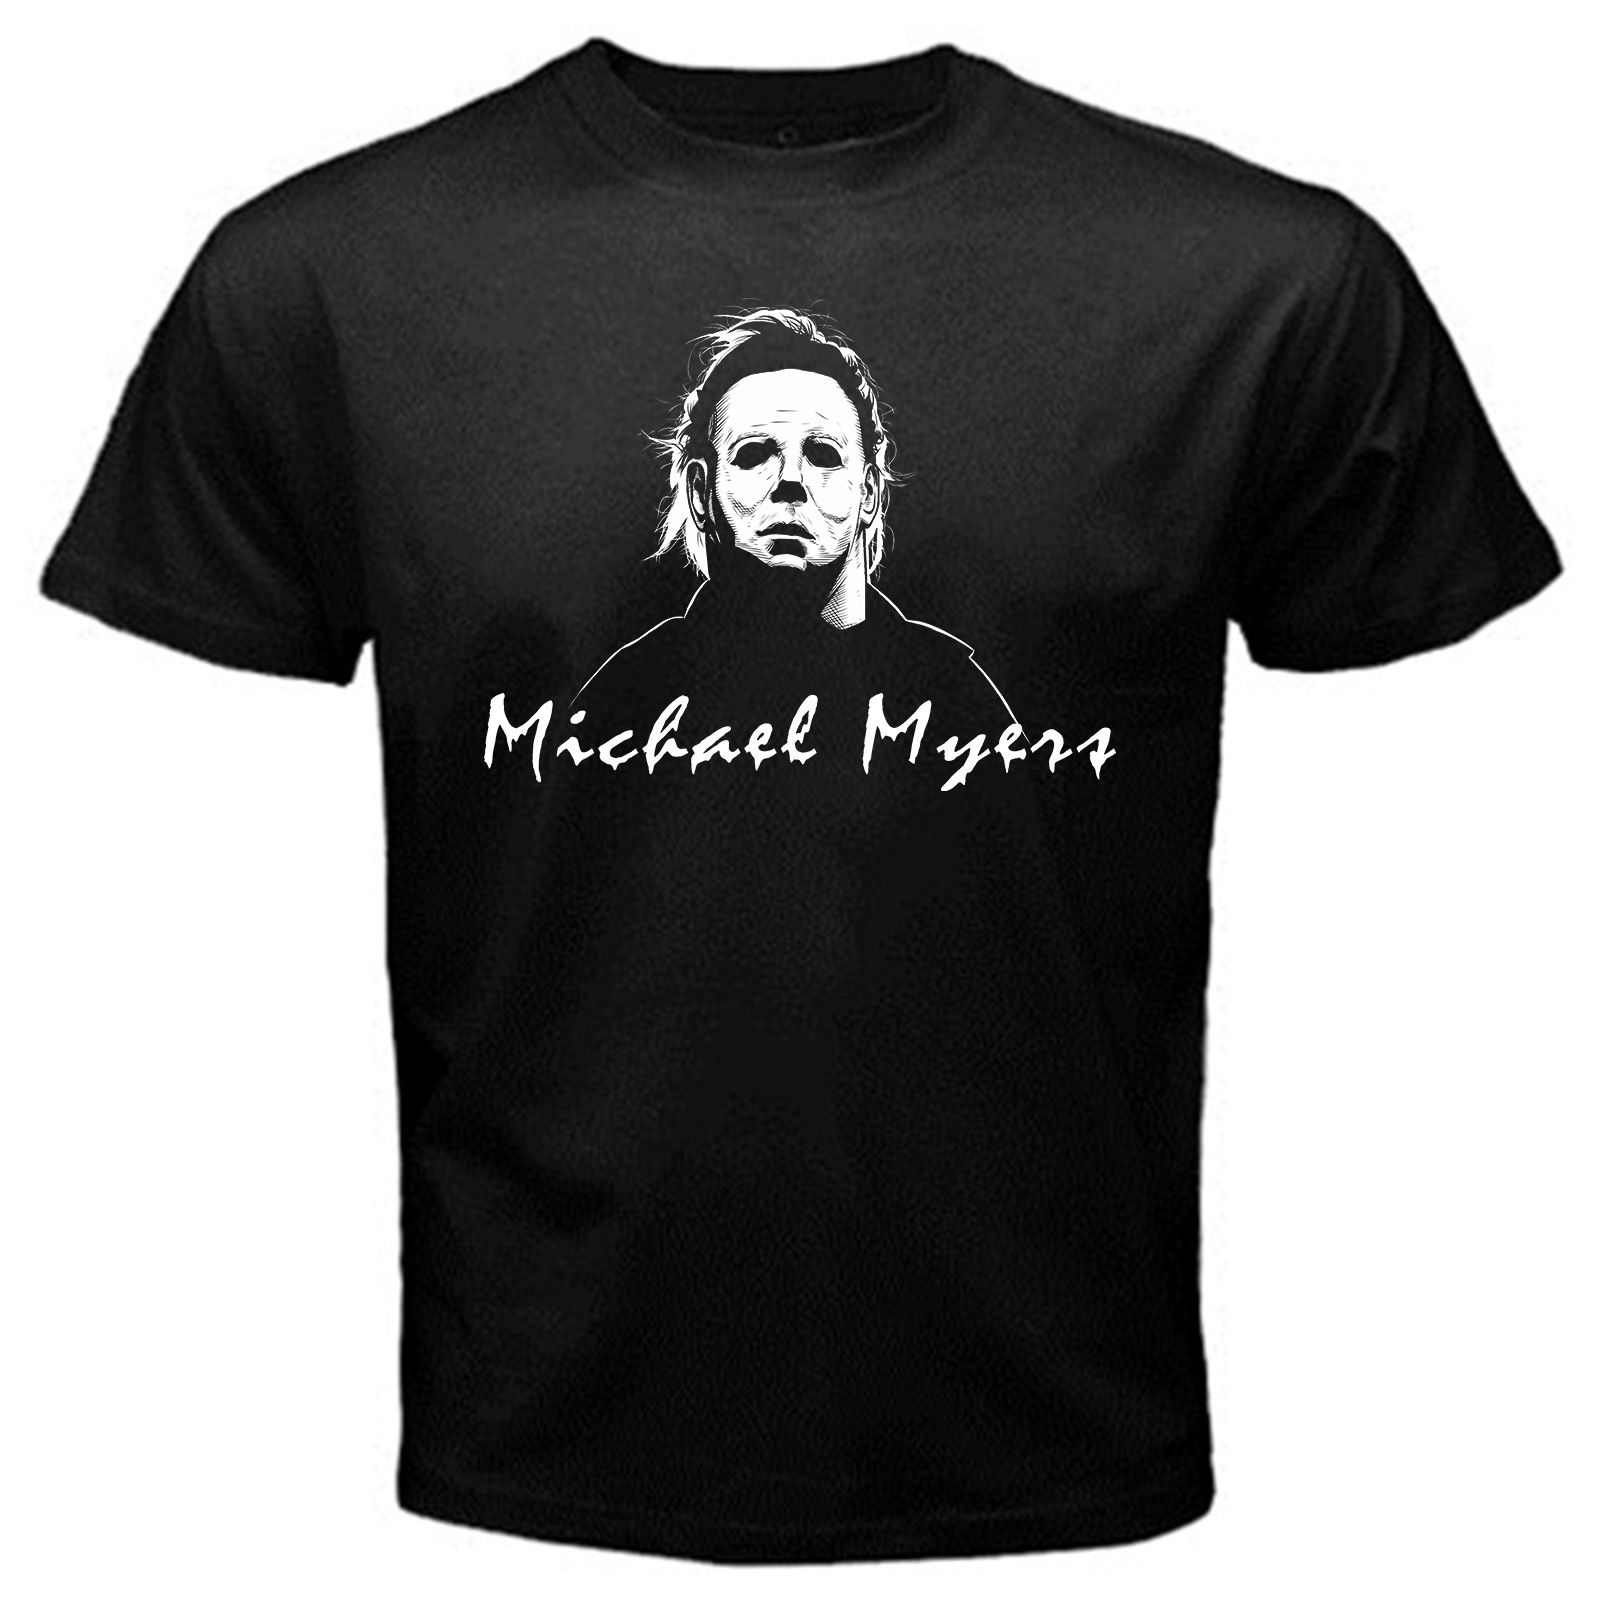 2018 New Fashion Men Tee Shirt Michael Myers mask movie vintage Halloween T-Shirt Black creepy clown